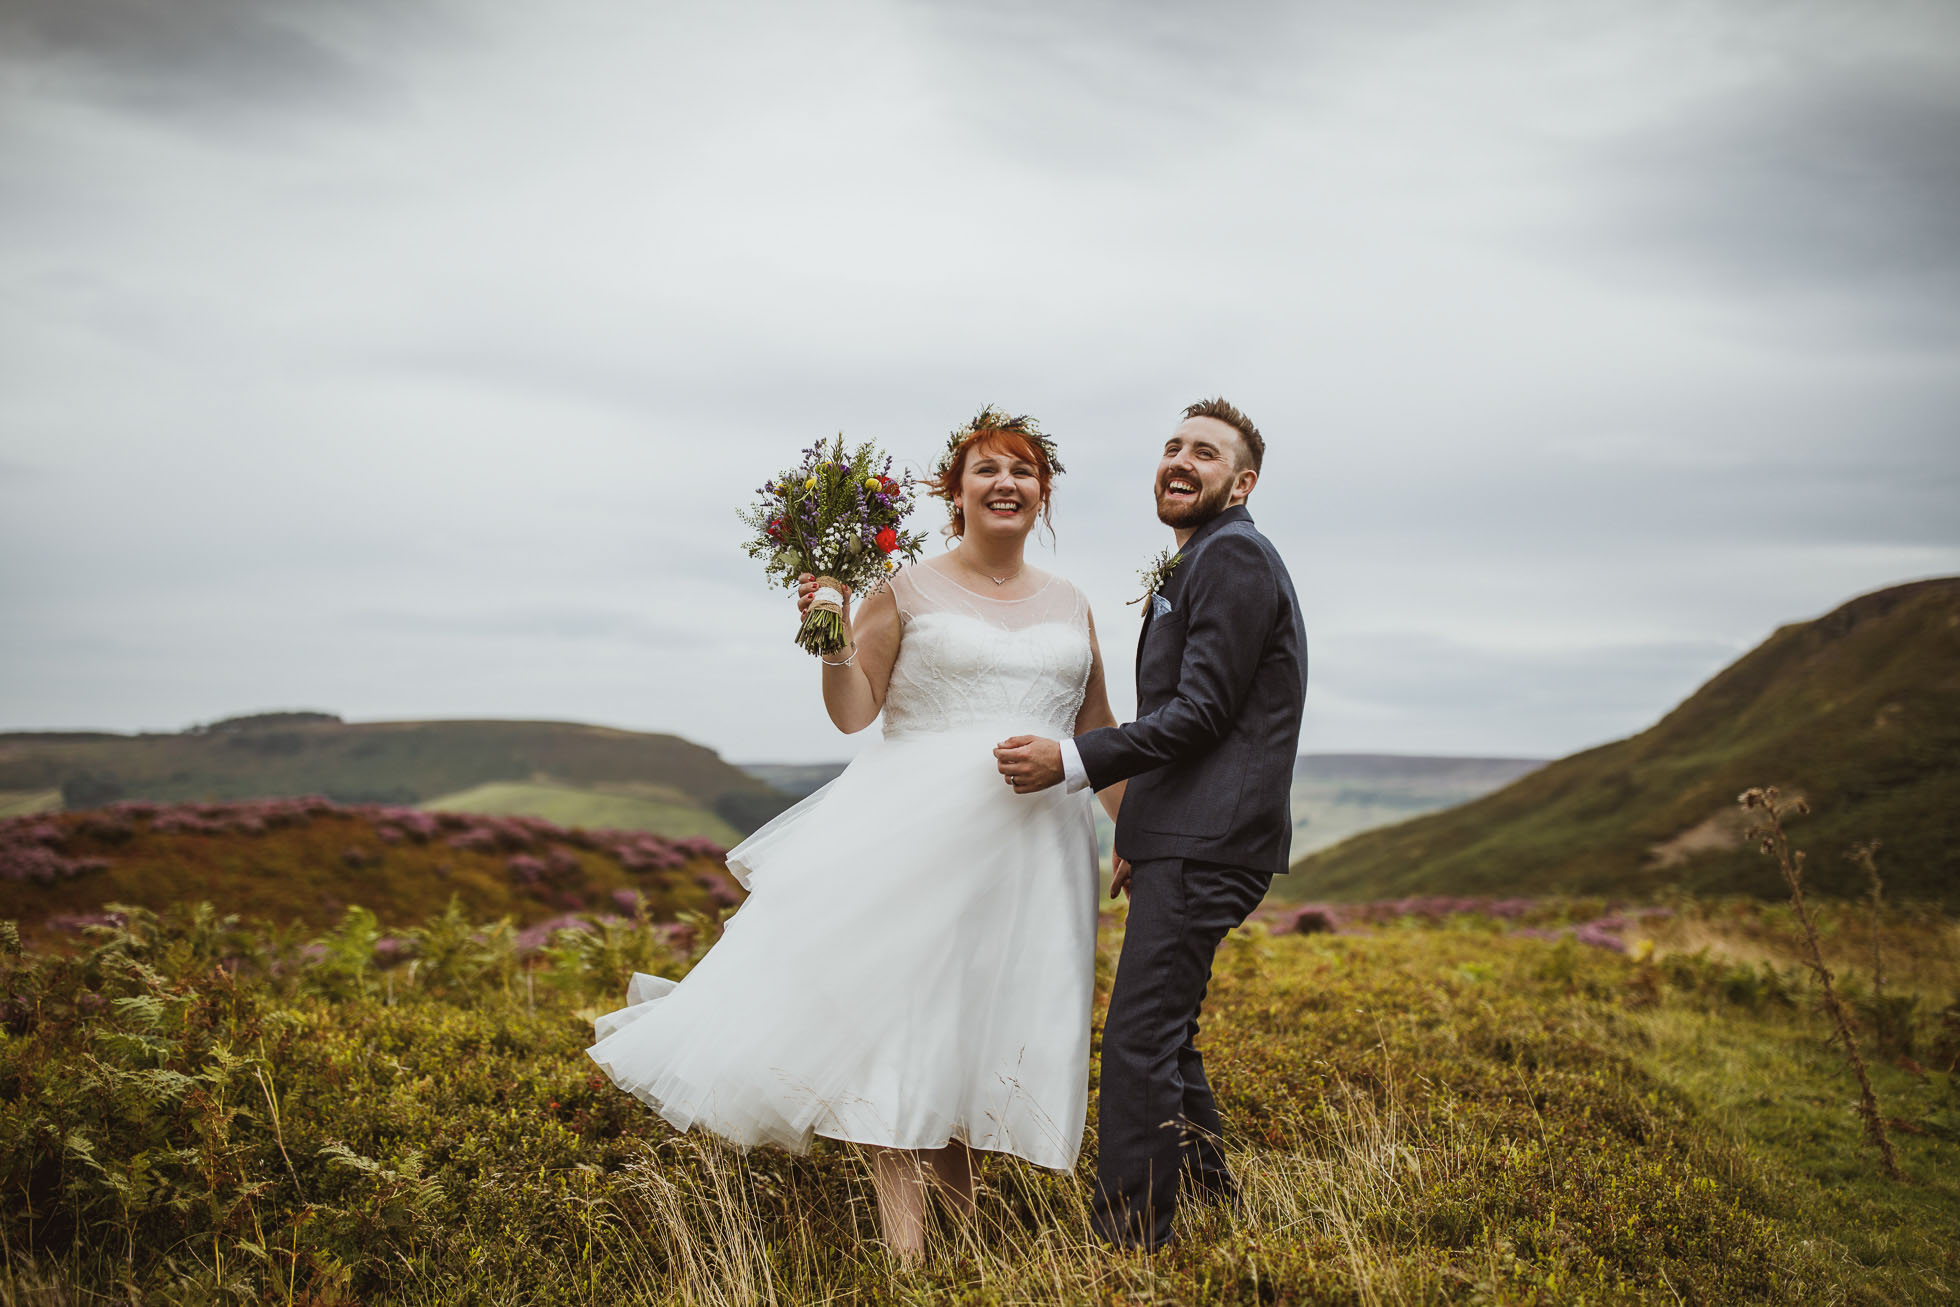 danby_castle_wedding_photographer-77.jpg